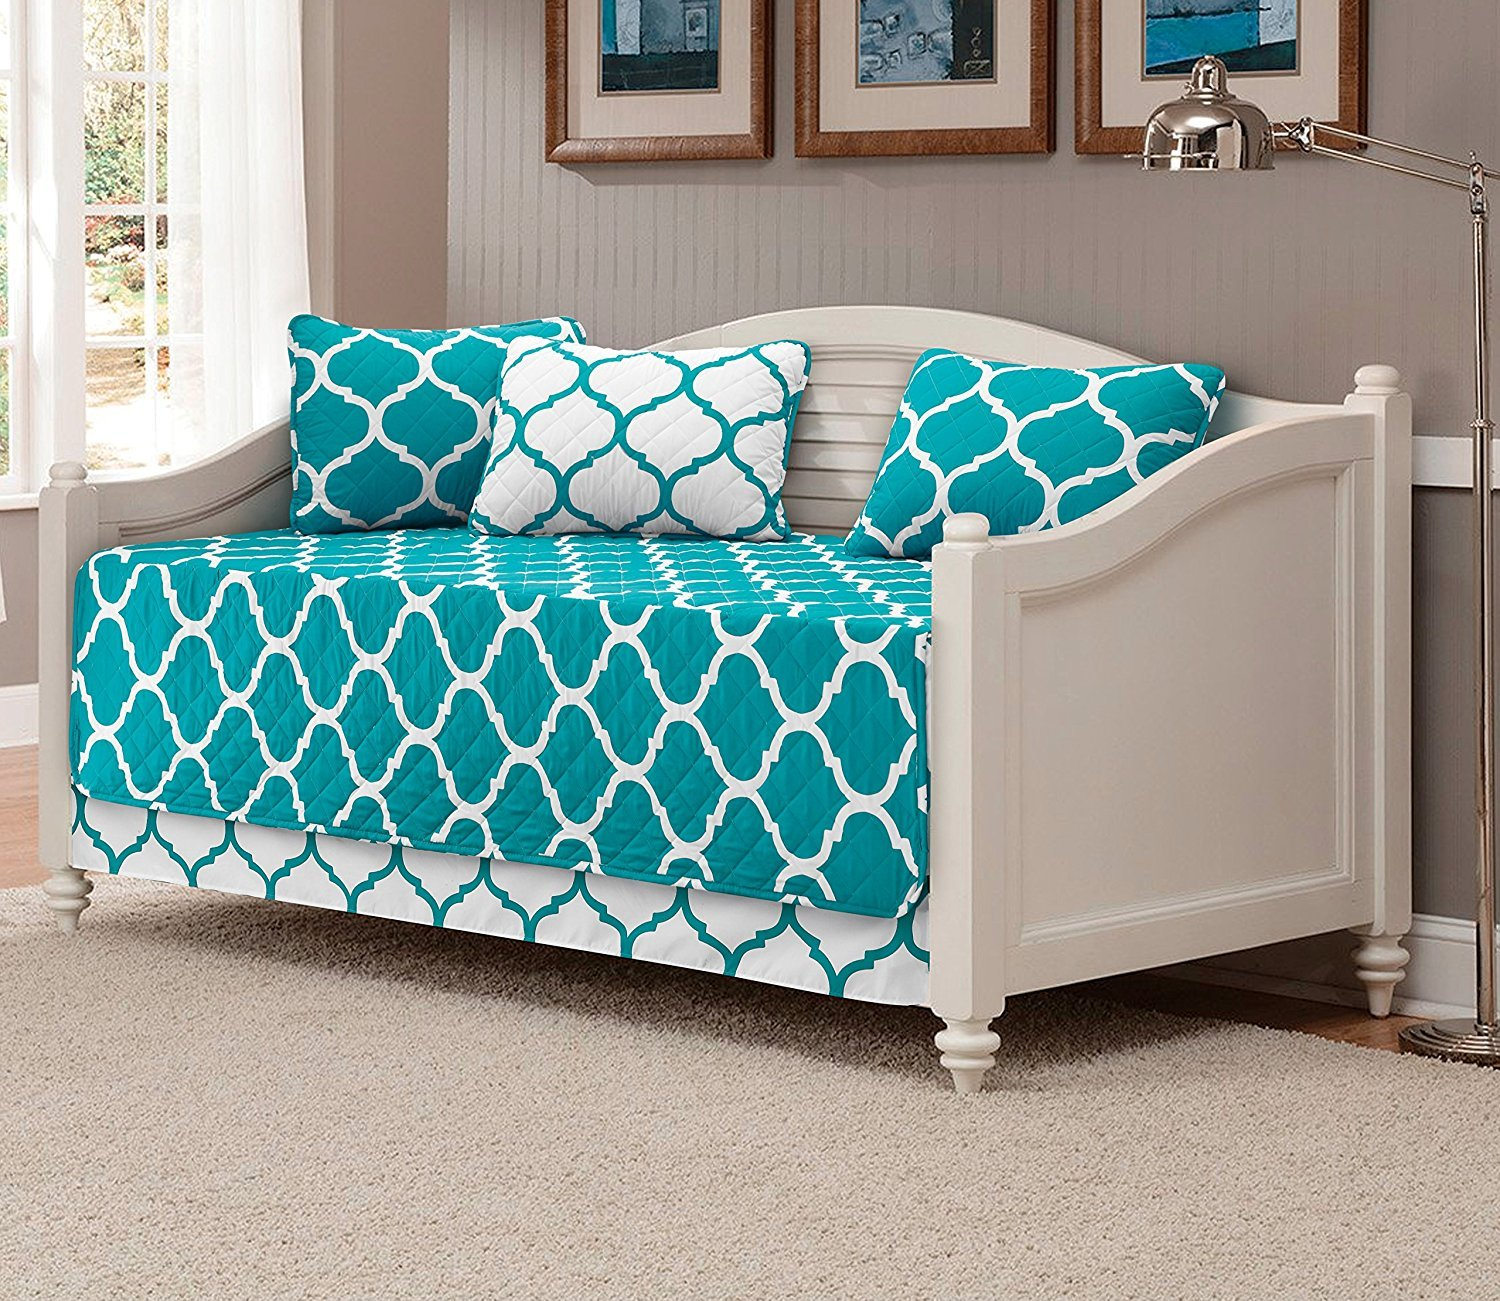 Fancy Collection 5pc DayBed Quilted Bedspread Coverlet Set Modern Geometric Turquoise/White New